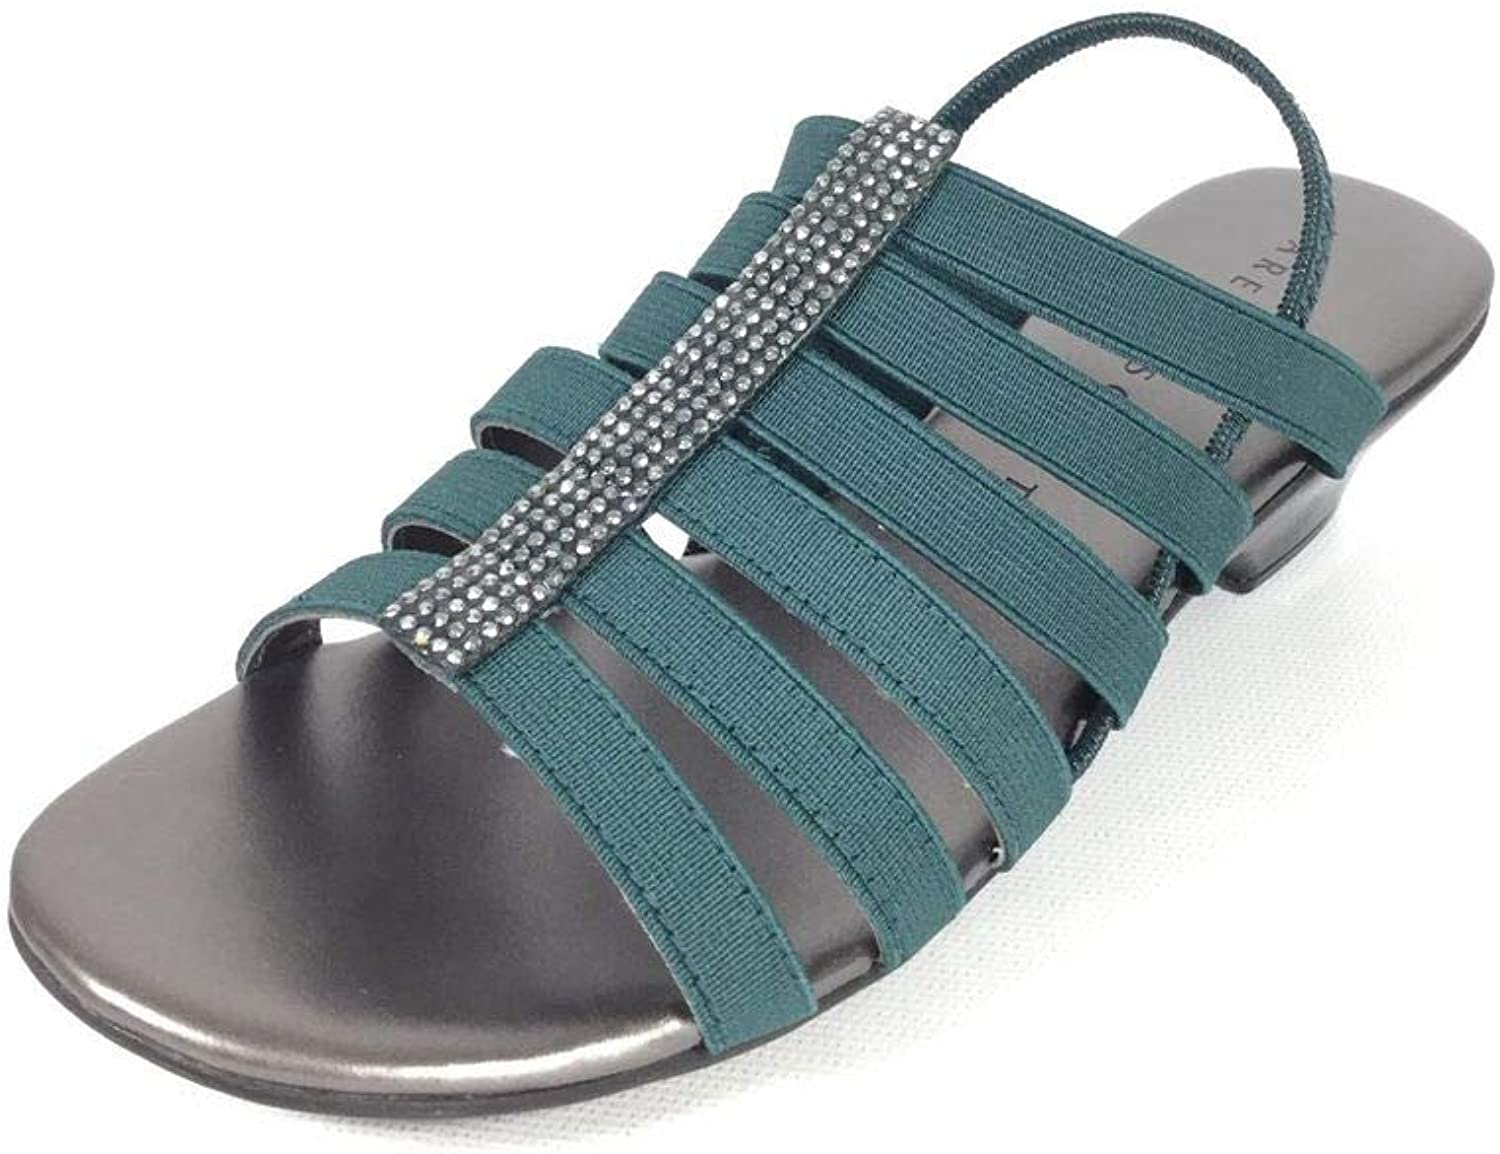 Karen Scott Womens Esteveetel Fabric Open Toe Casual Strappy Sandals